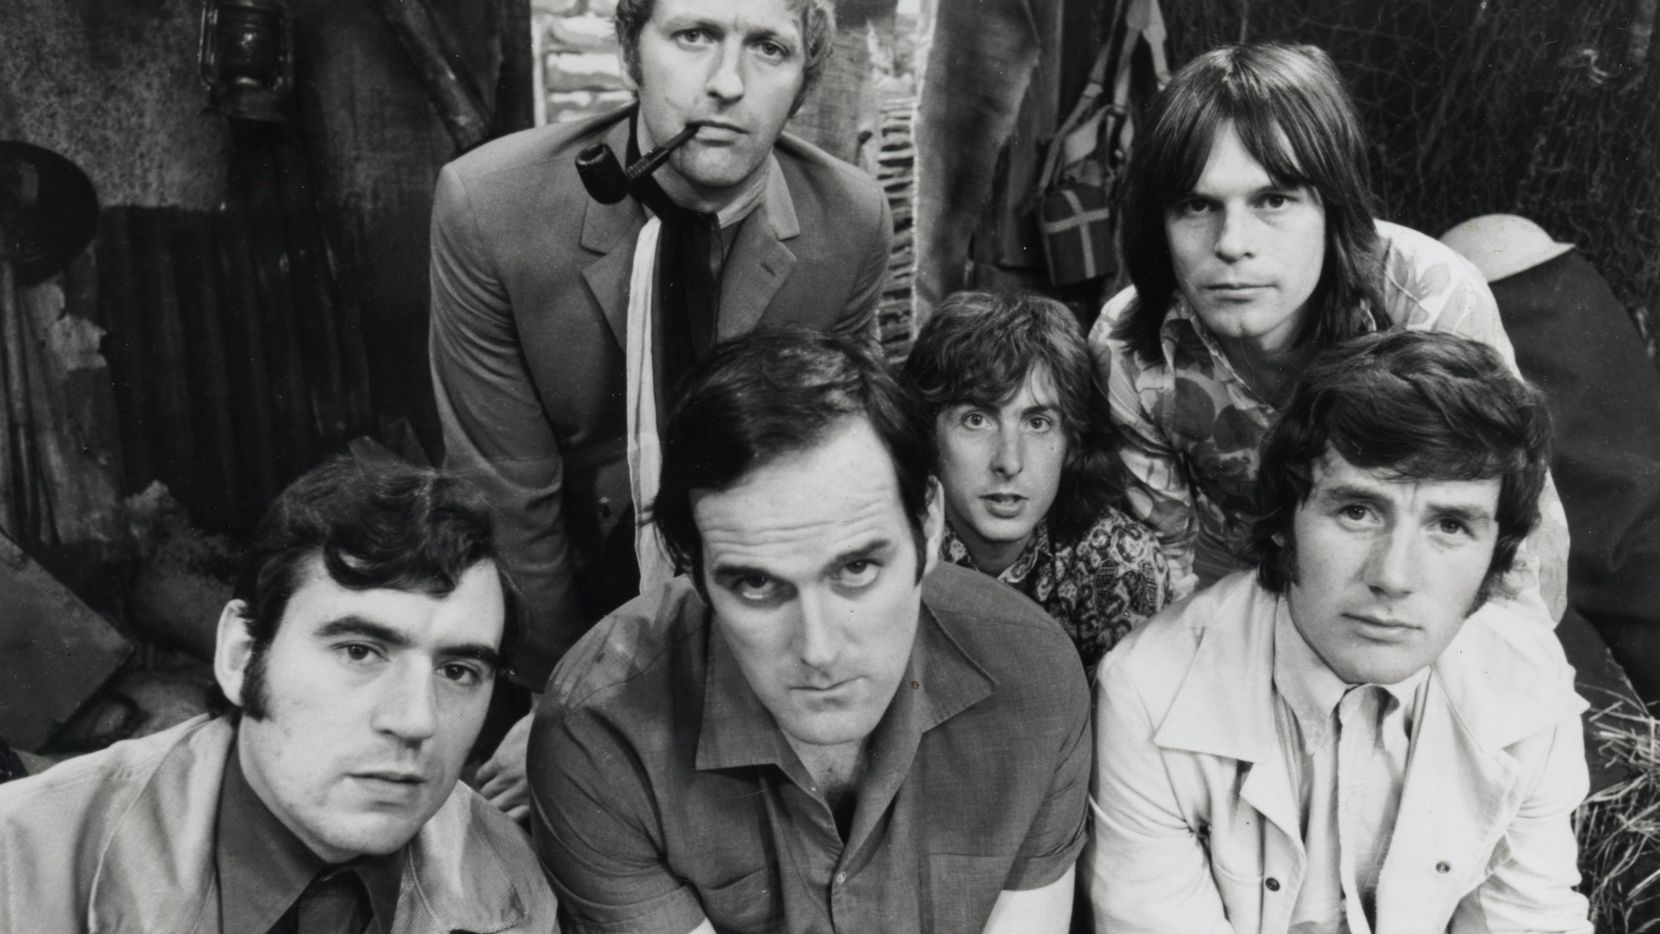 Monty Python's members as they looked 50 years ago, when the Flying Circus debuted on the BBC. Bottom from left, Terry Jones, John Cleese and Michael Palin, and top from left, Graham Chapman, Eric Idle and Terry Gilliam